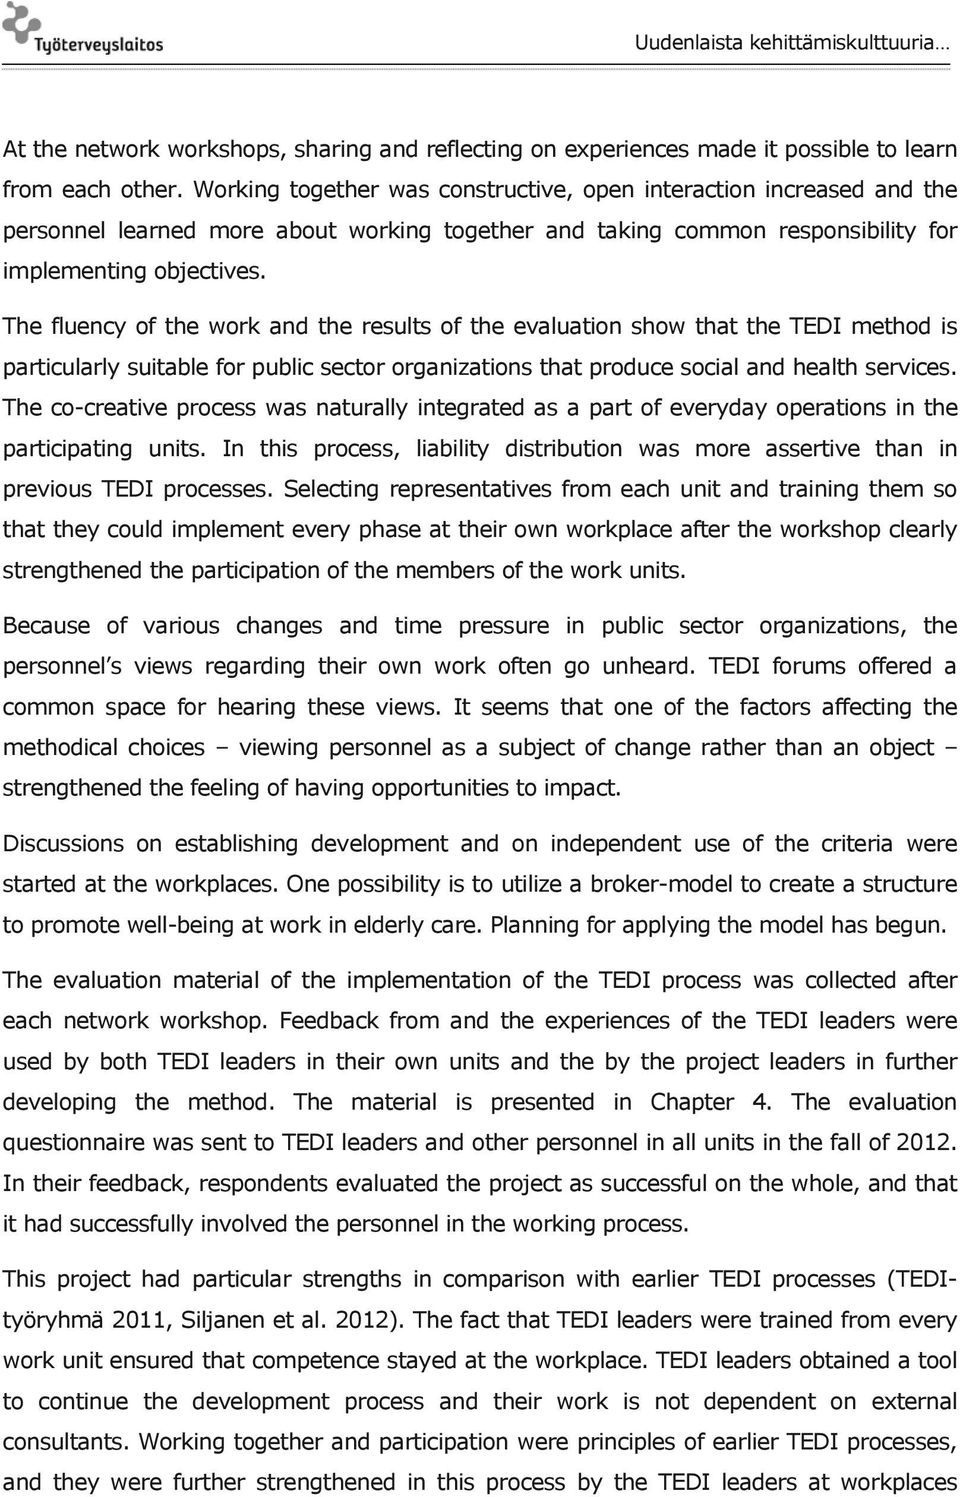 The fluency of the work and the results of the evaluation show that the TEDI method is particularly suitable for public sector organizations that produce social and health services.